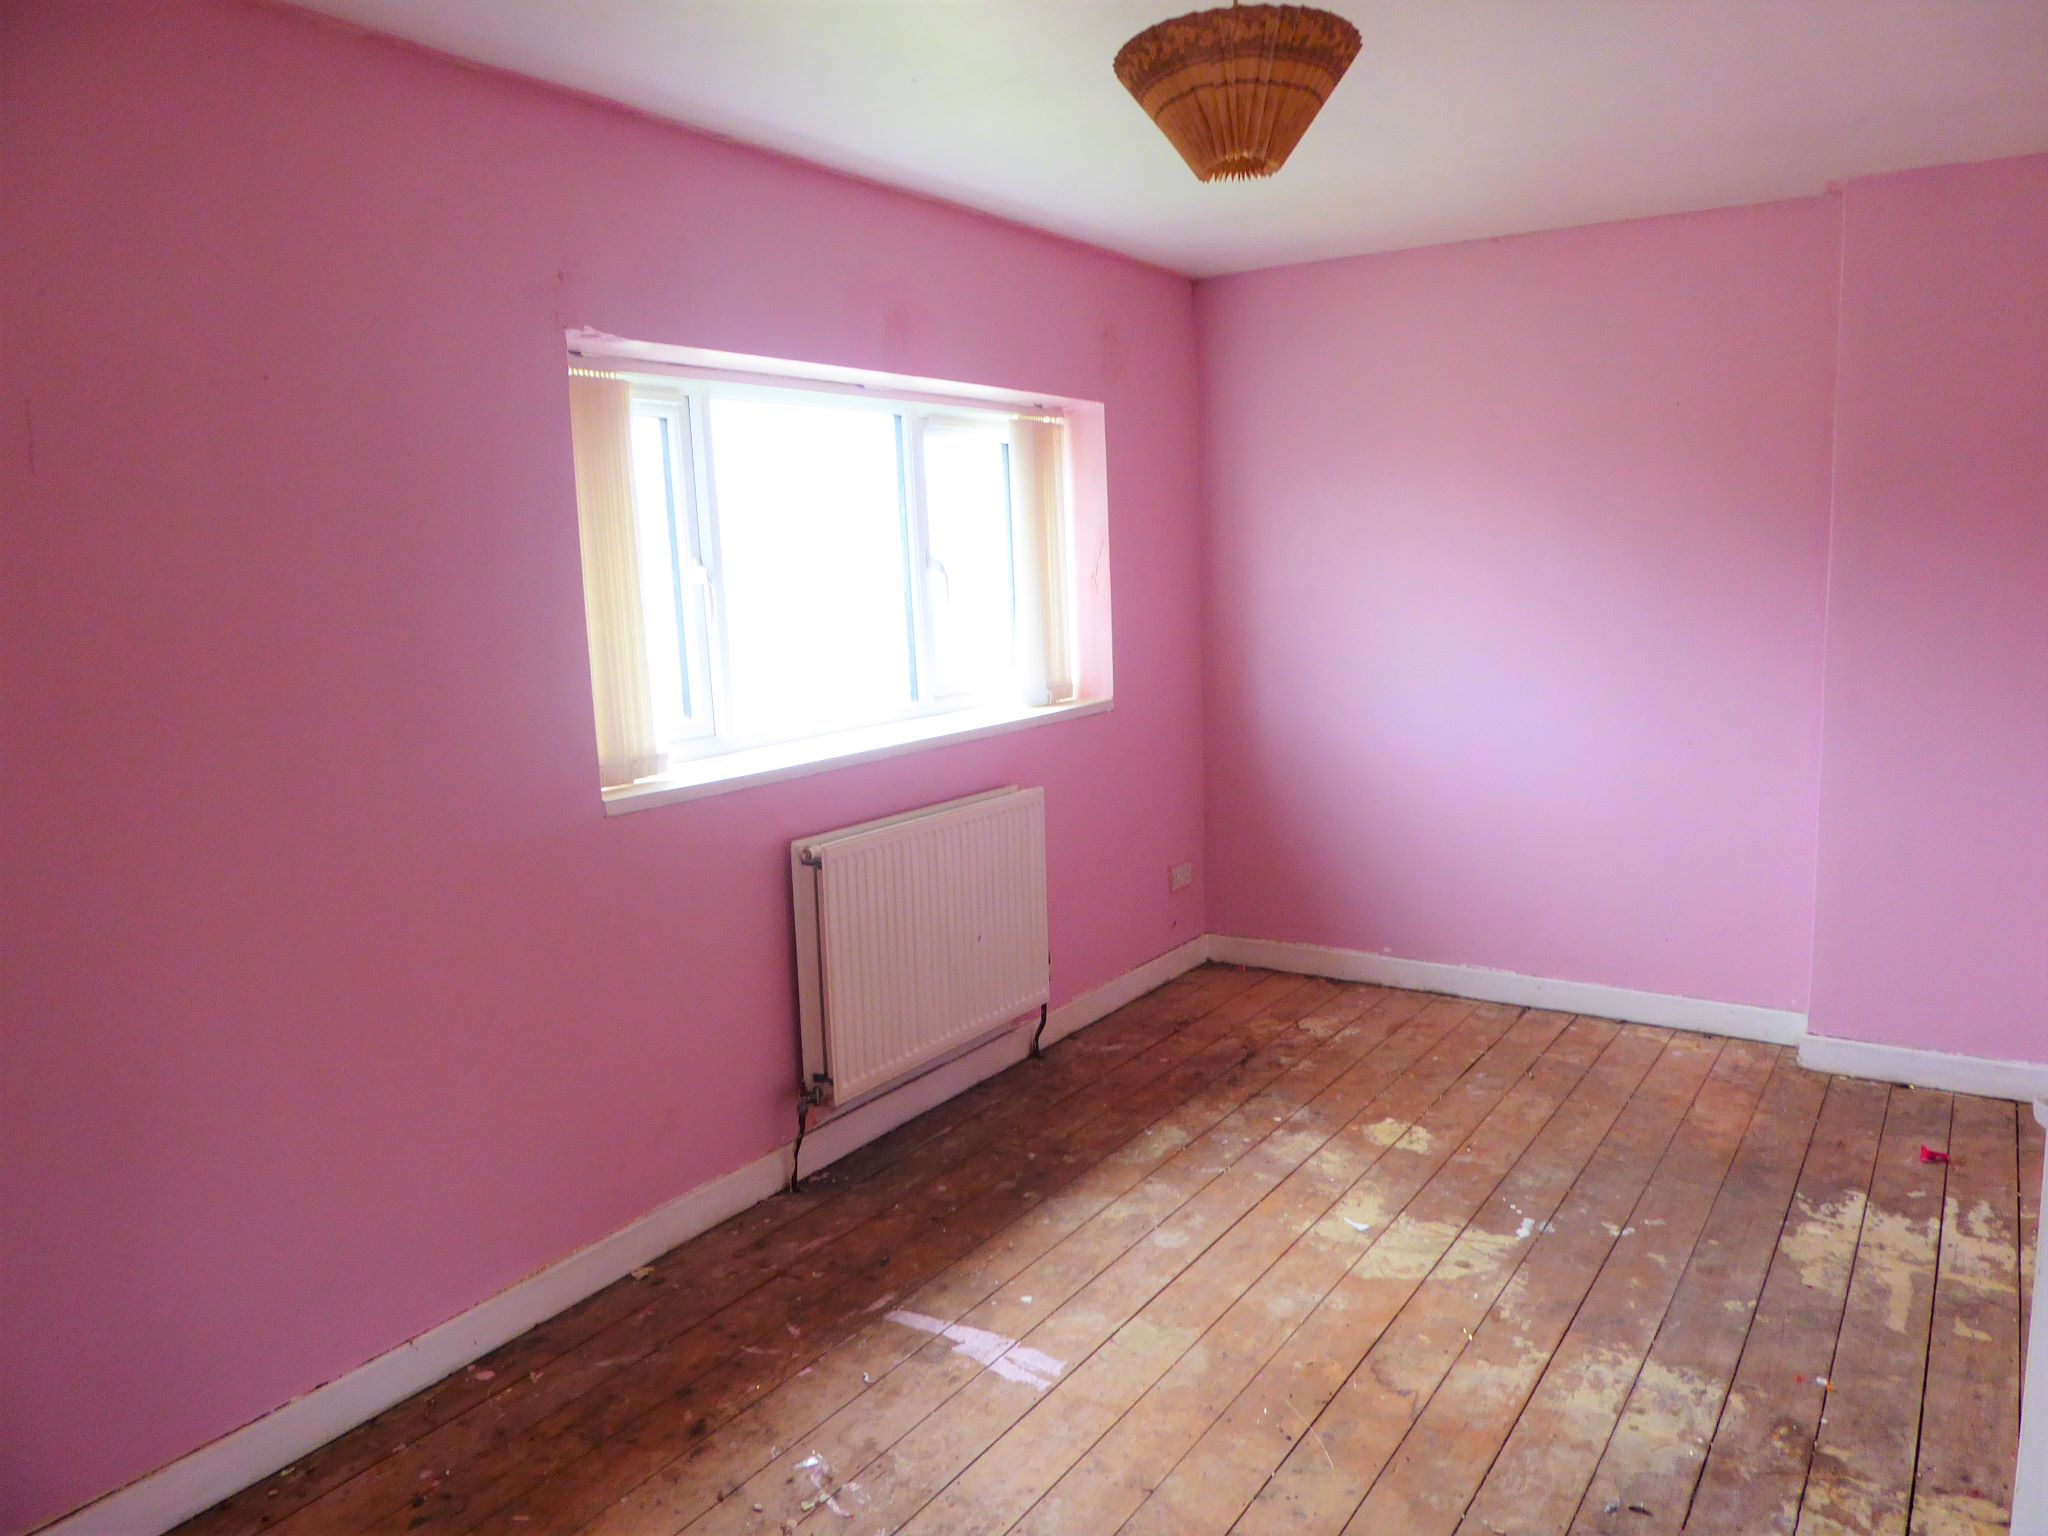 3 bedroom mid terraced house SSTC in Abergele - Photograph 7